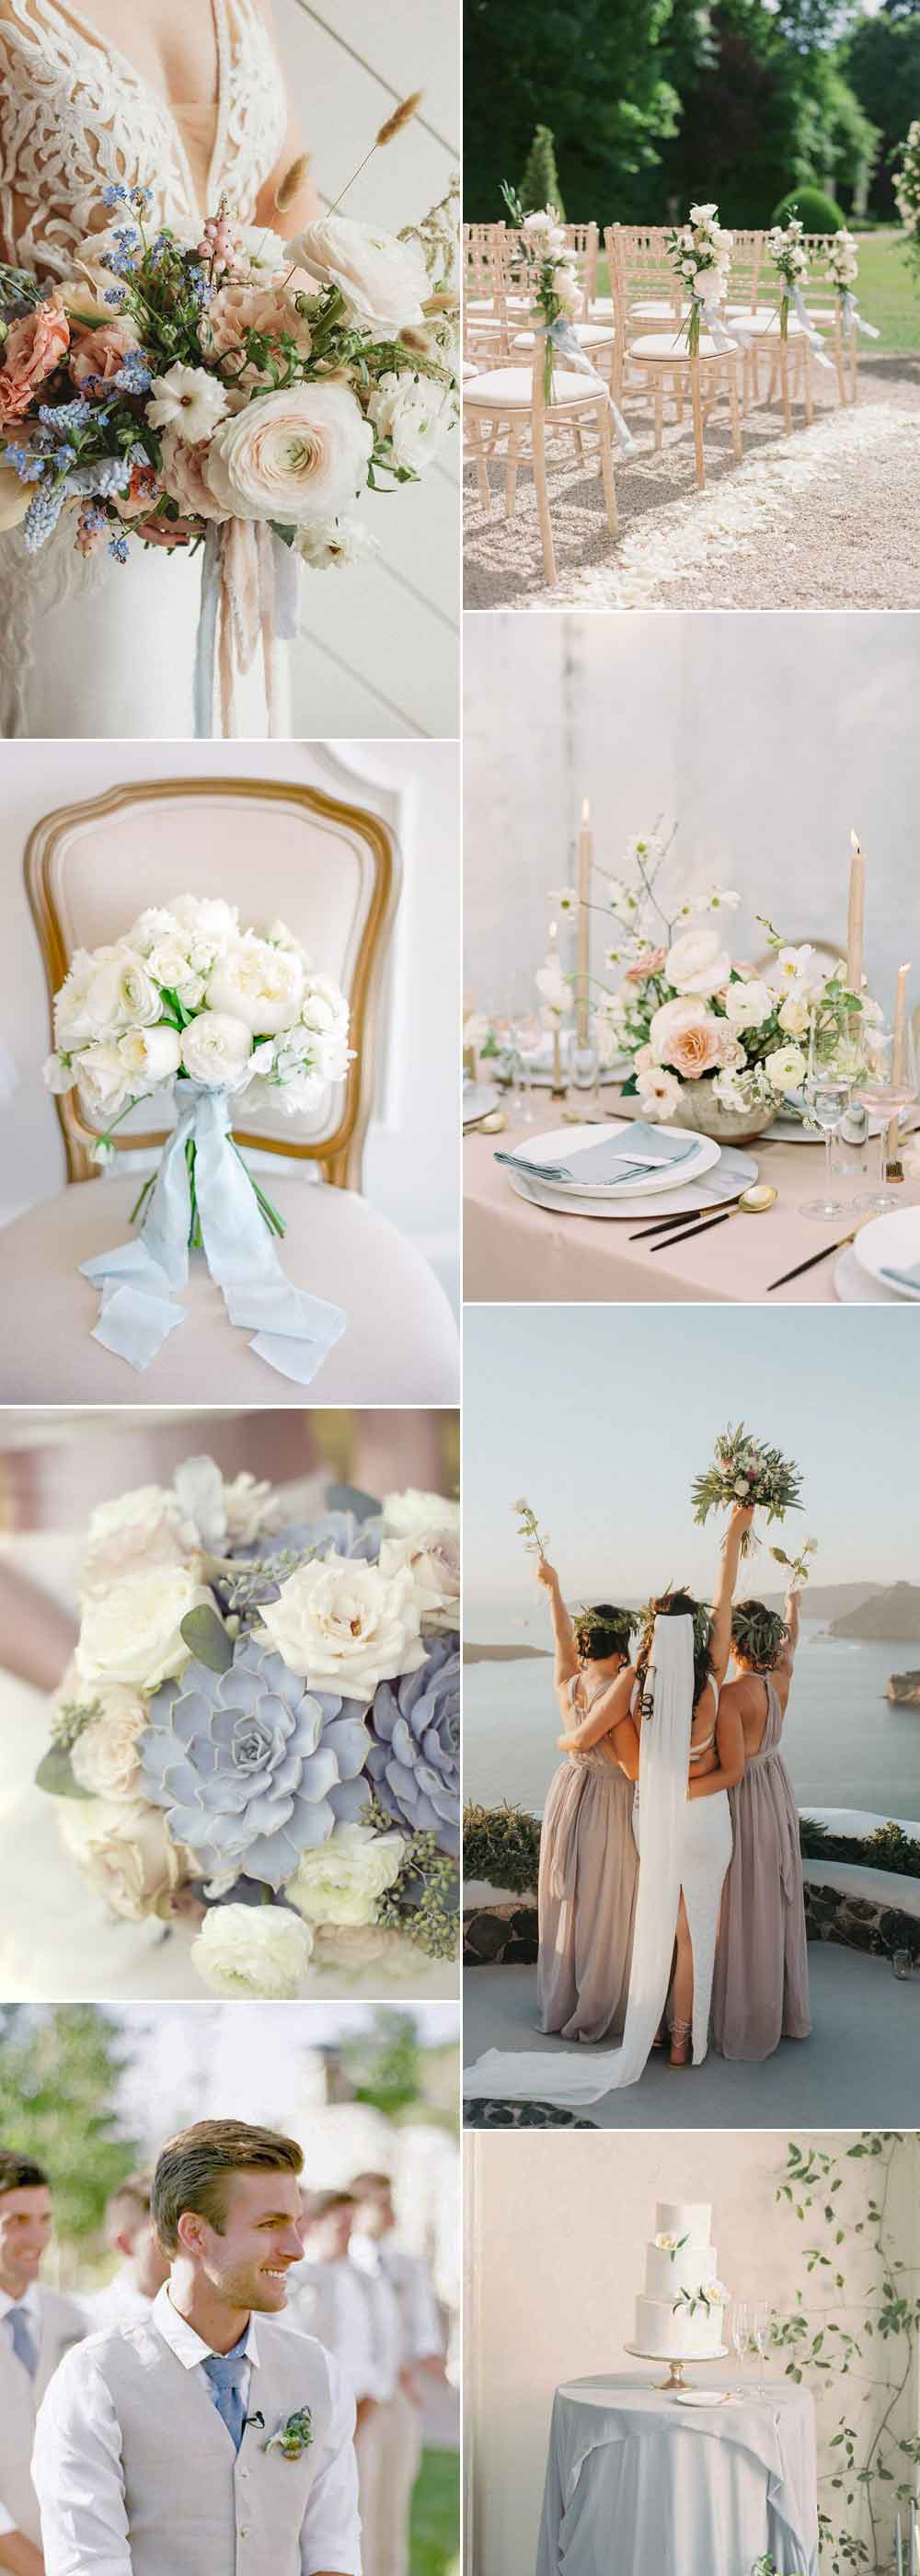 Blue and beige wedding ideas